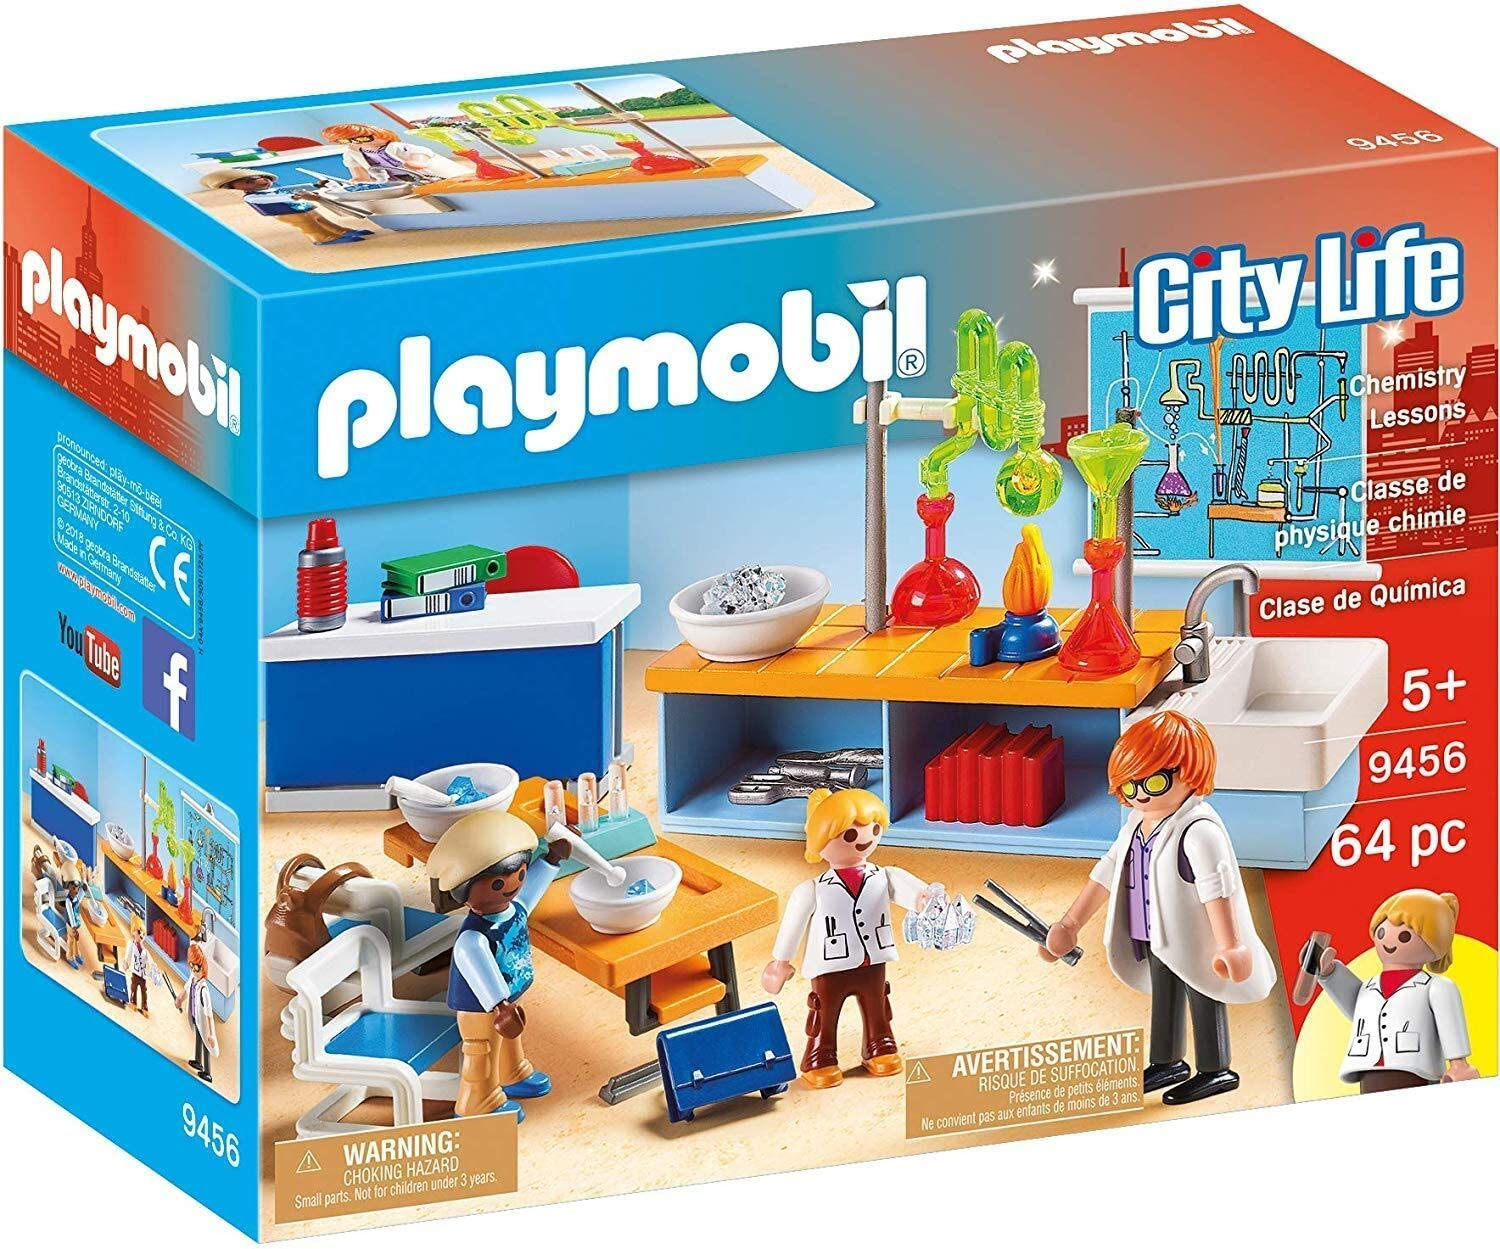 Amazon.com: PLAYMOBIL Chemistry Class (Renewed): Toys & Games